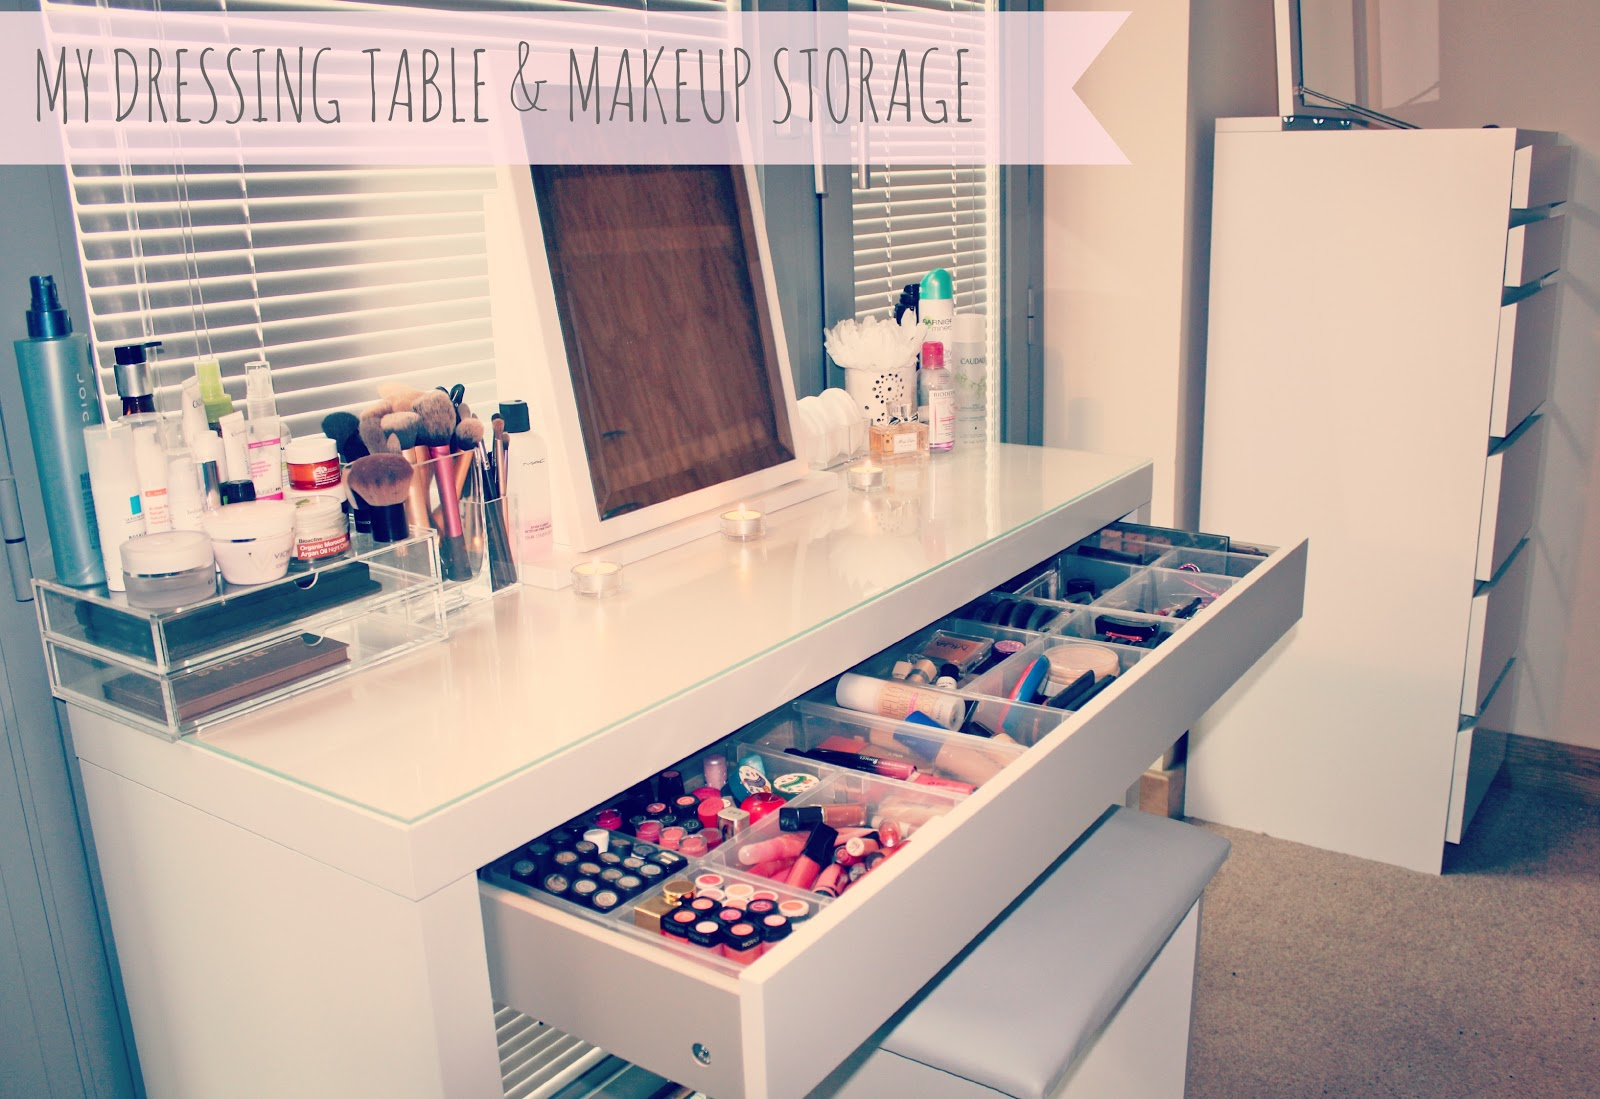 My makeup storage ikea malm dressing table sweet fashion make up - Rangement dressing ikea ...